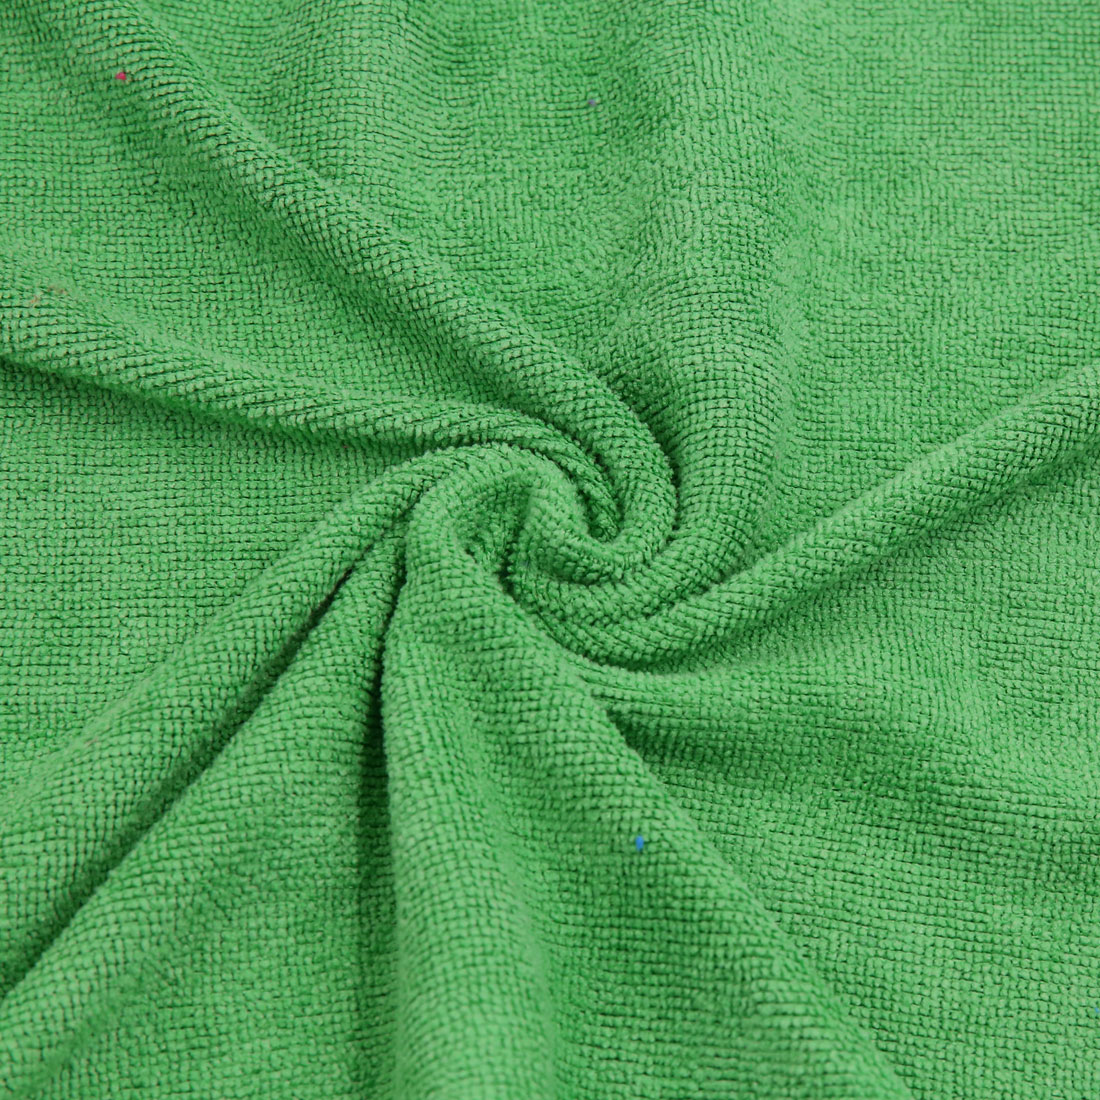 3pcs 250gsm 65 x 33cm Blue Green Coffee Color Microfiber Cleaning Towel for Car - image 2 of 7